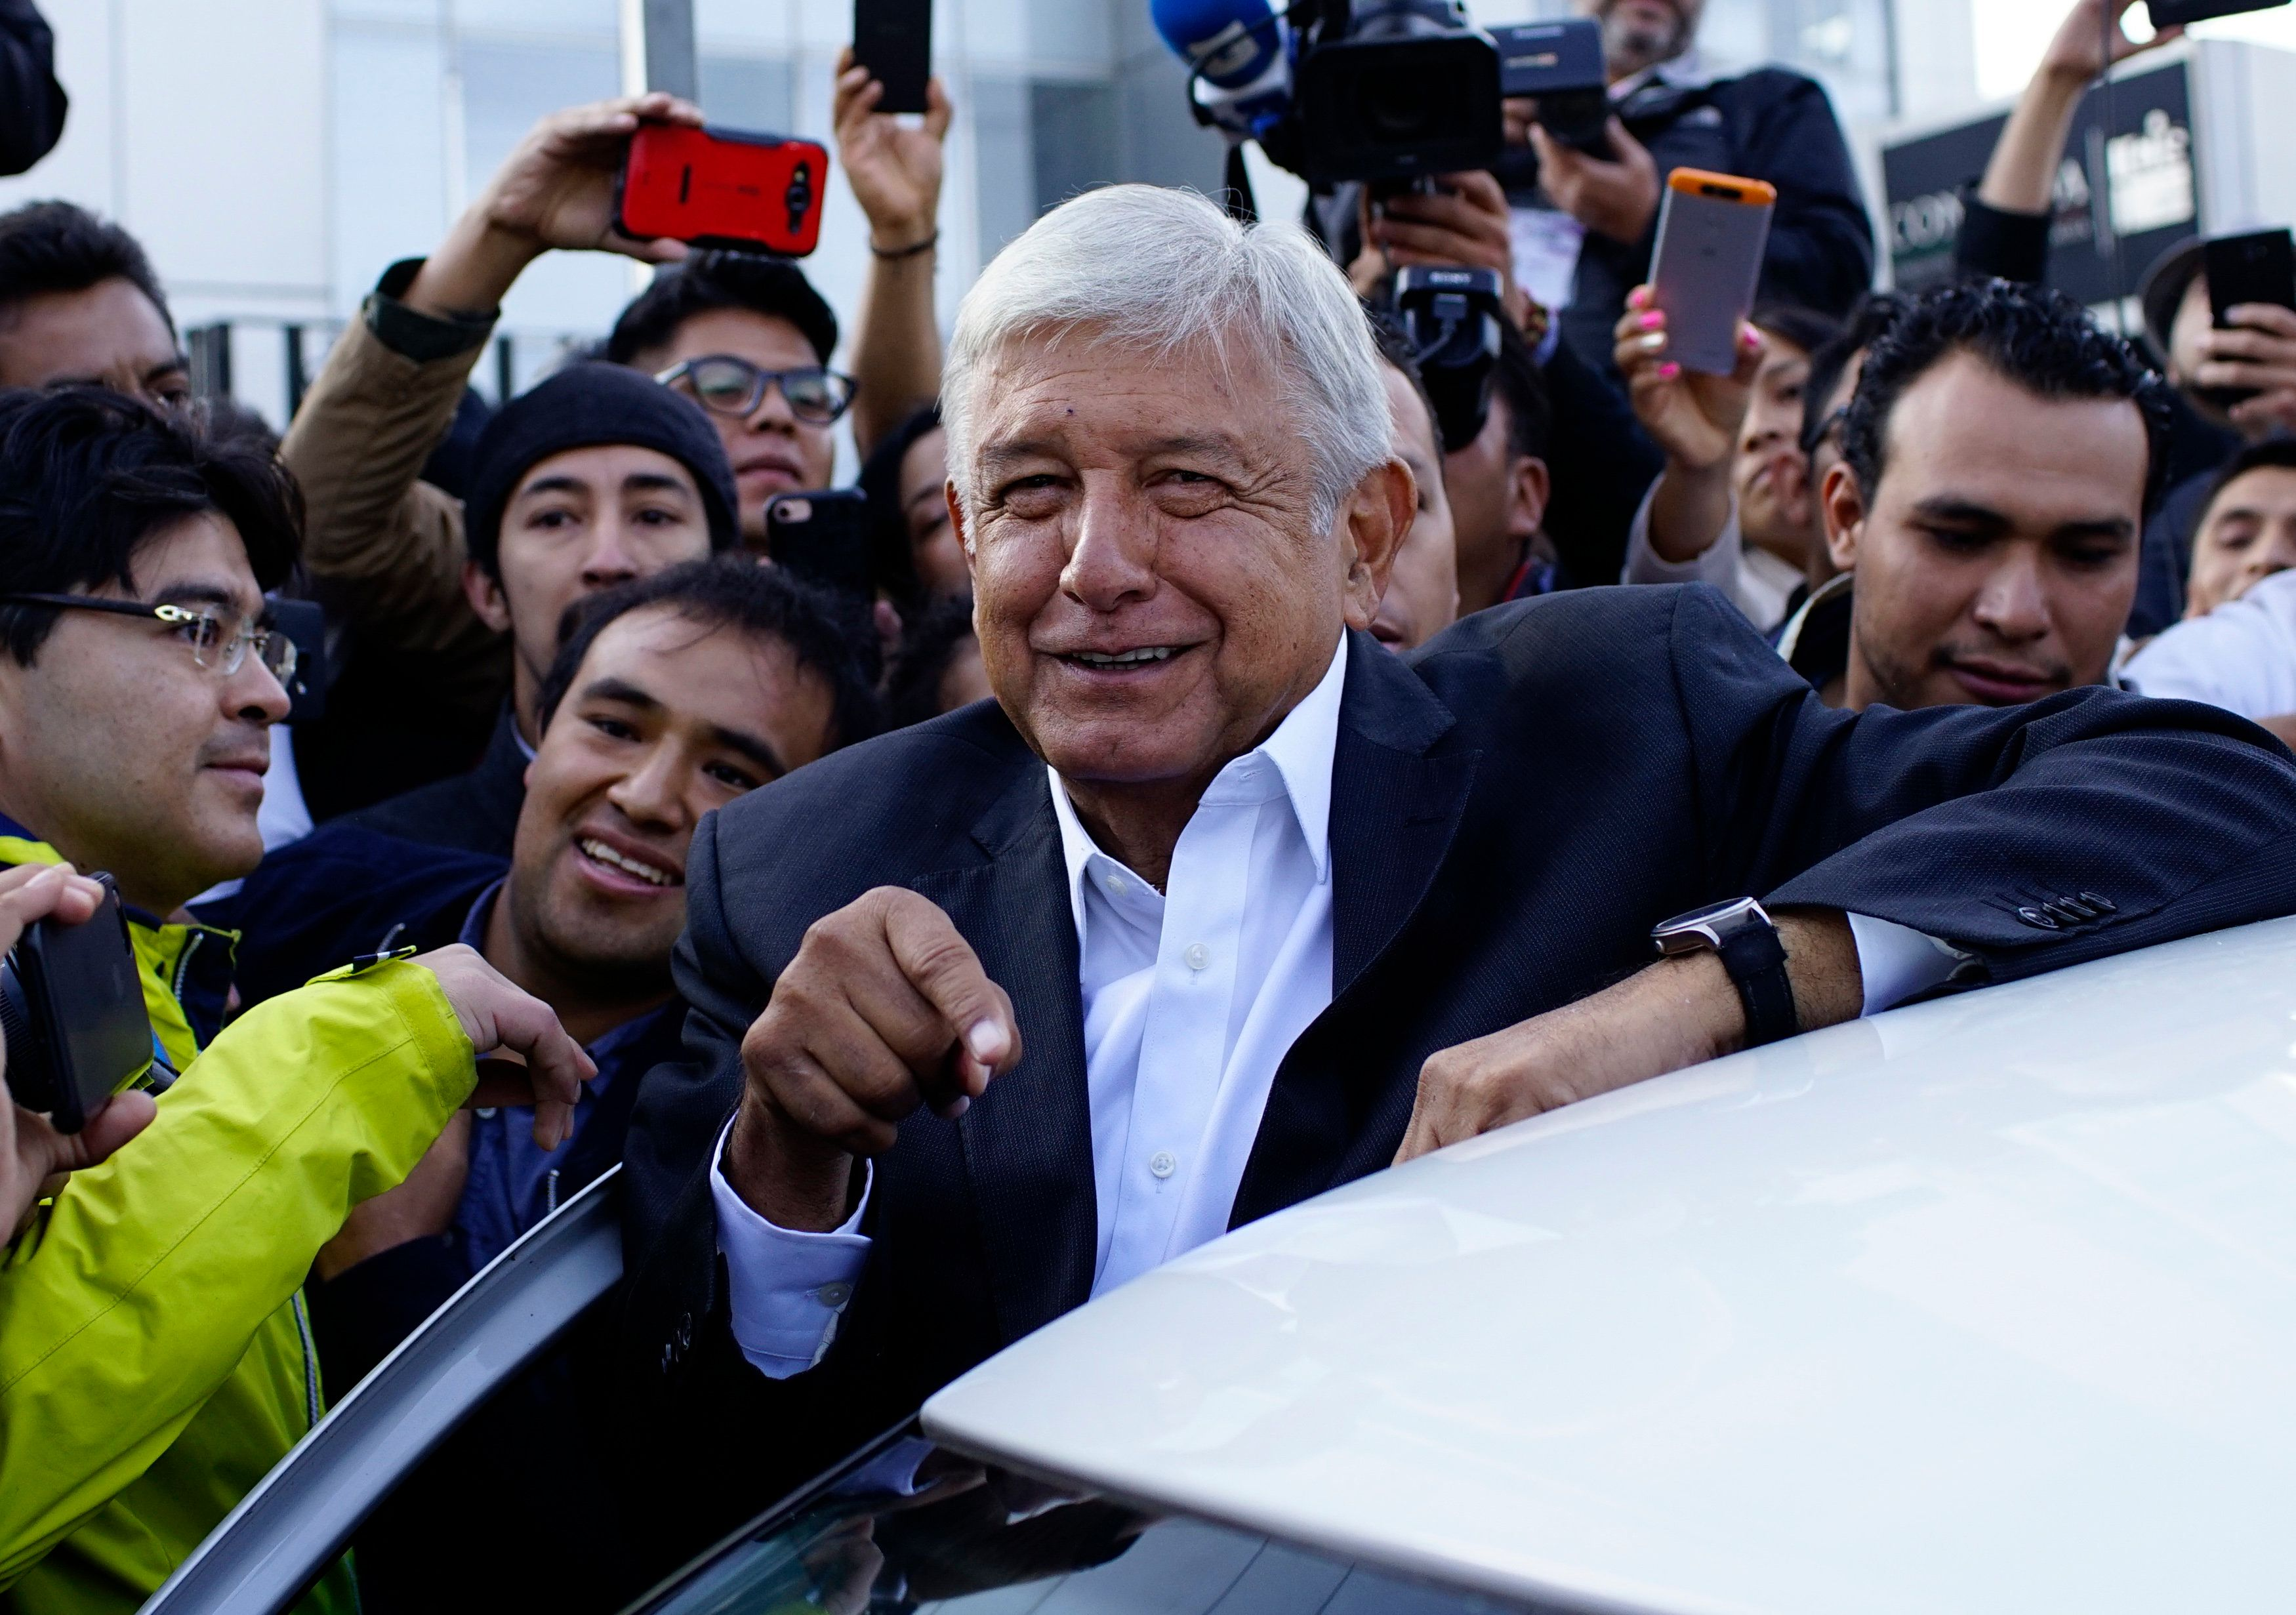 Presidential candidate Andres Manuel Lopez Obrador talks to reporters as he departs after casting his ballot at a polling station during the presidential election in Mexico City, Mexico, July 1, 2018. REUTERS/Alexandre Meneghini